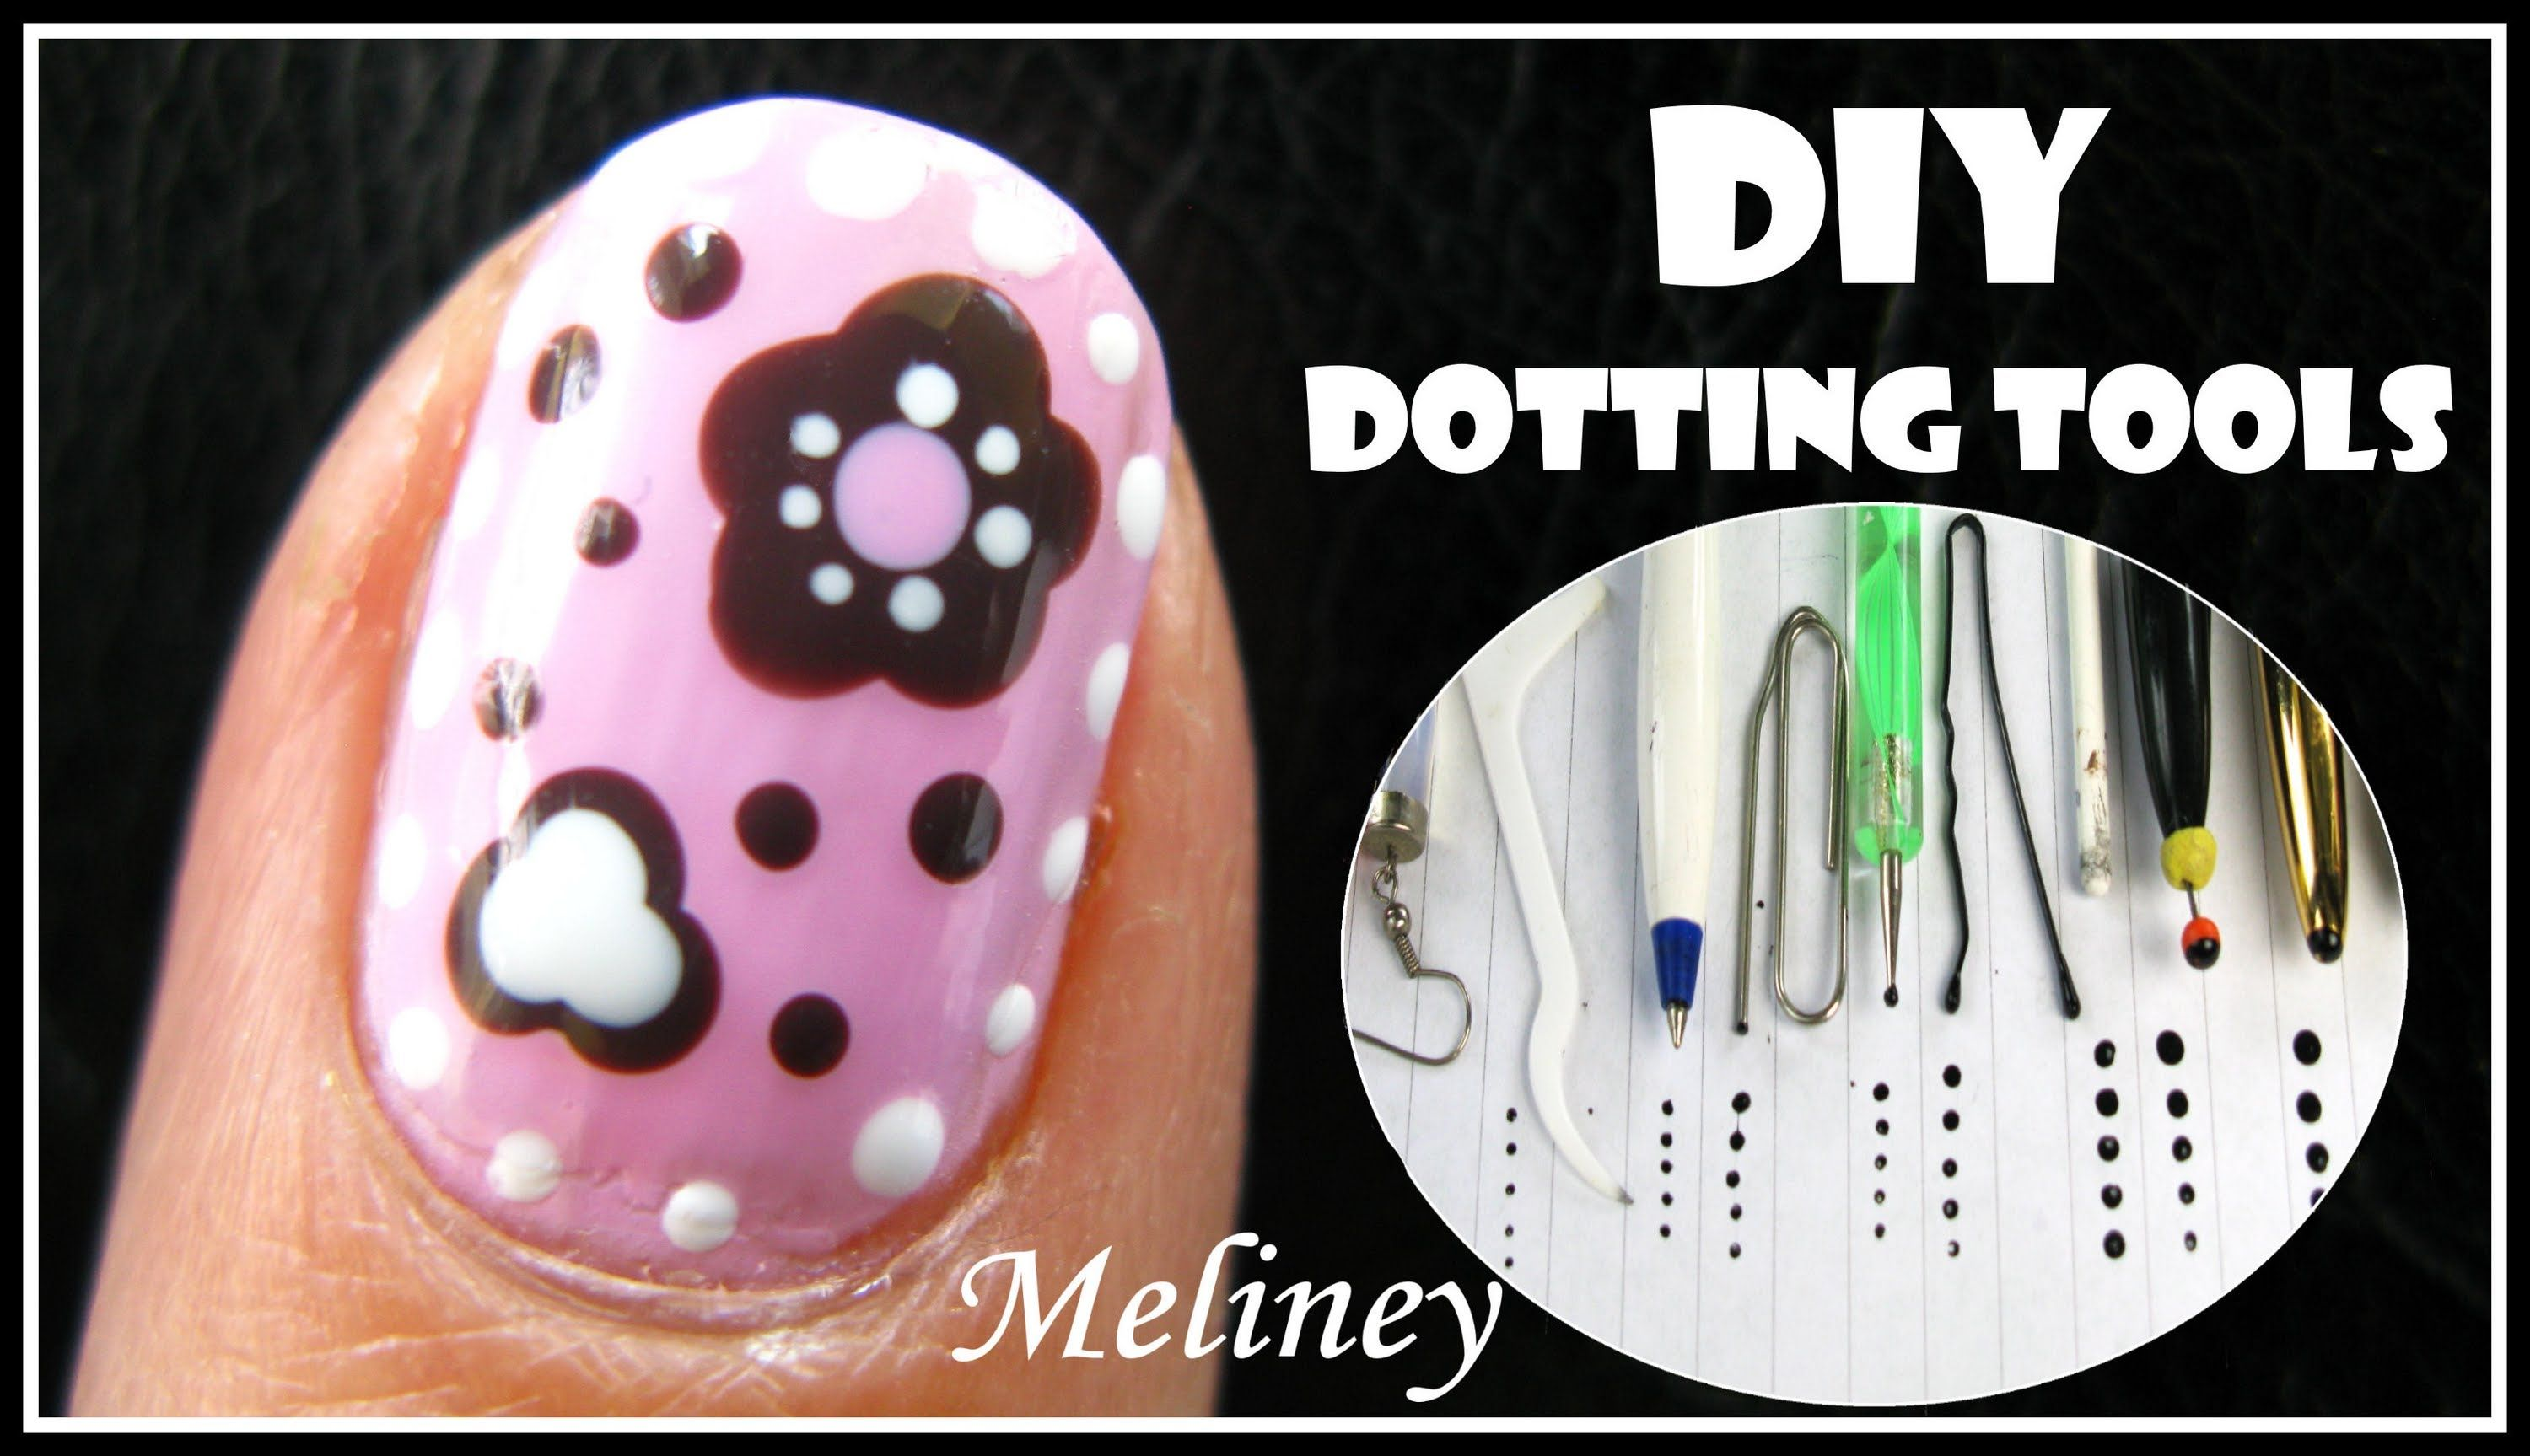 Craft flower nail art tutorial diy dotting tool candy design craft flower nail art tutorial diy dotting tool candy design easy simp solutioingenieria Image collections